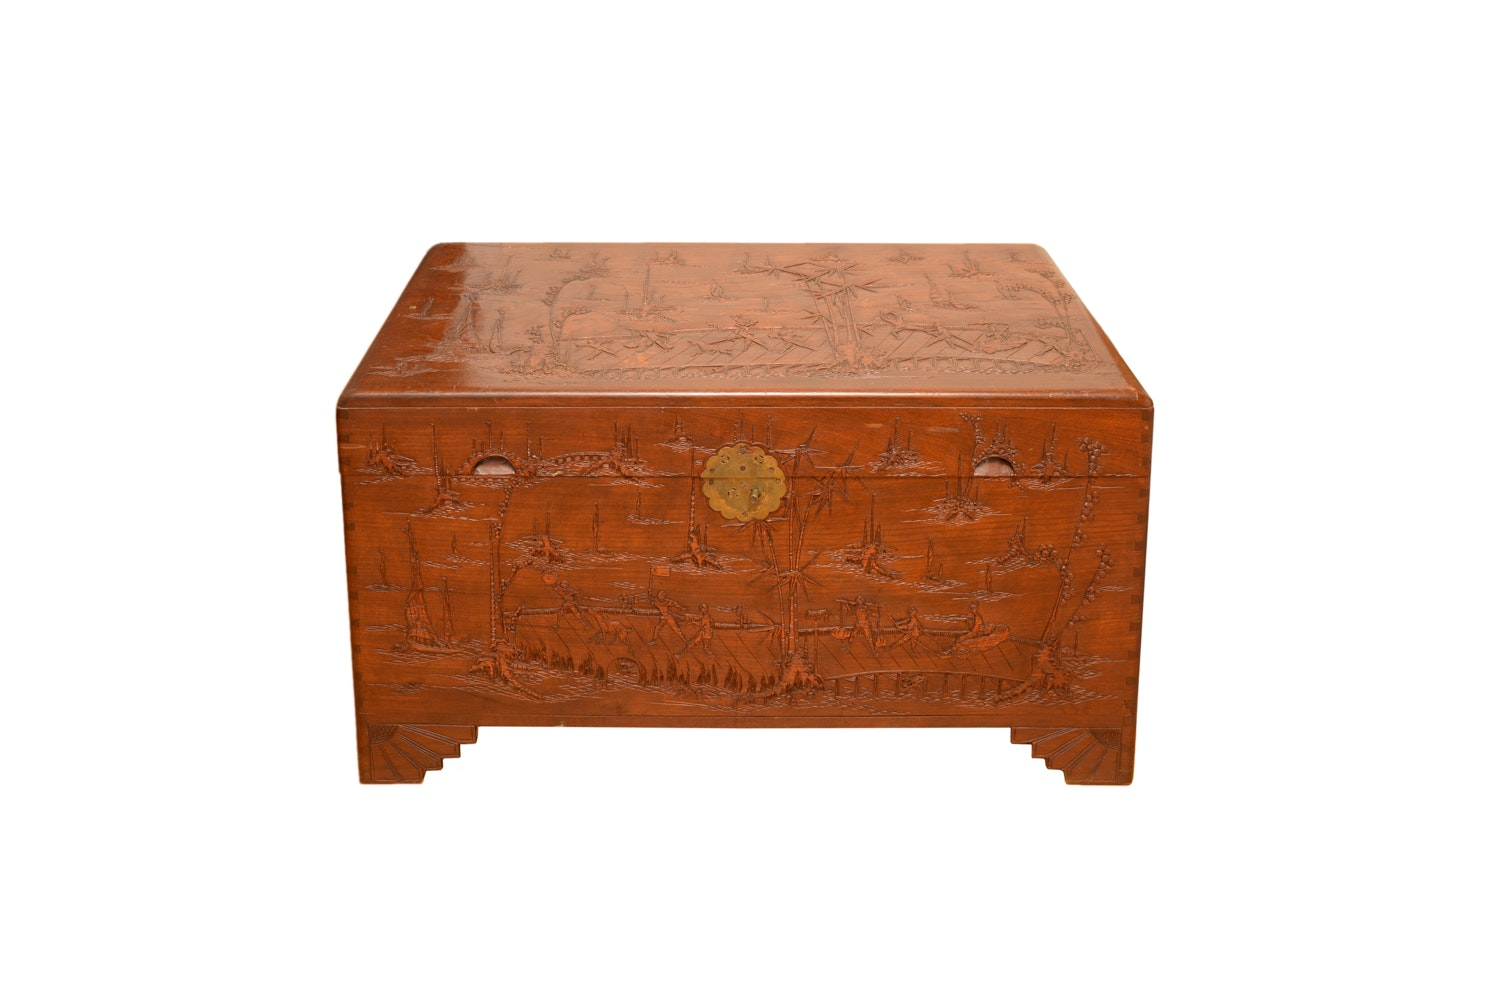 Vintage Chinese Carved Wooden Chest